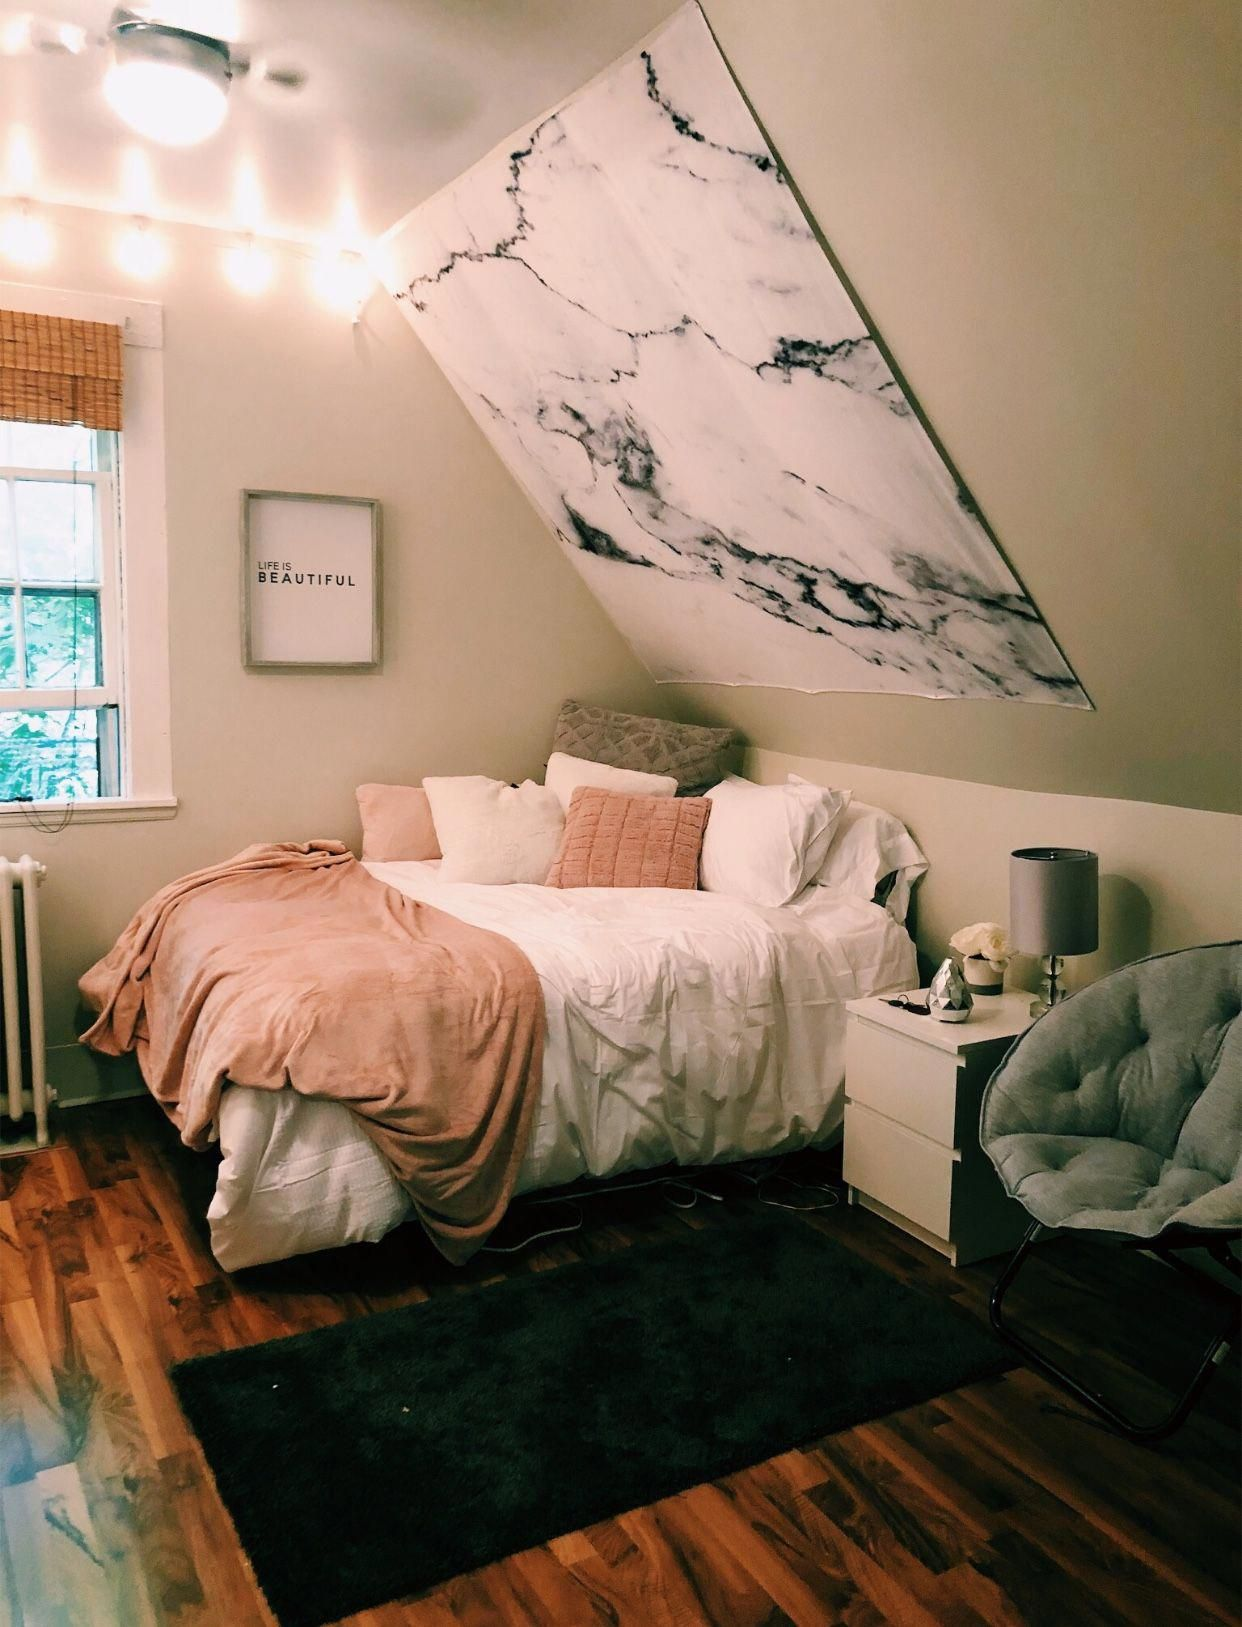 House Helpful Strategies For Runners And Joggers Runnersandjoggers Small Room Bedroom Bedroom Decor Aesthetic Room Decor Eco bedroom design ideas